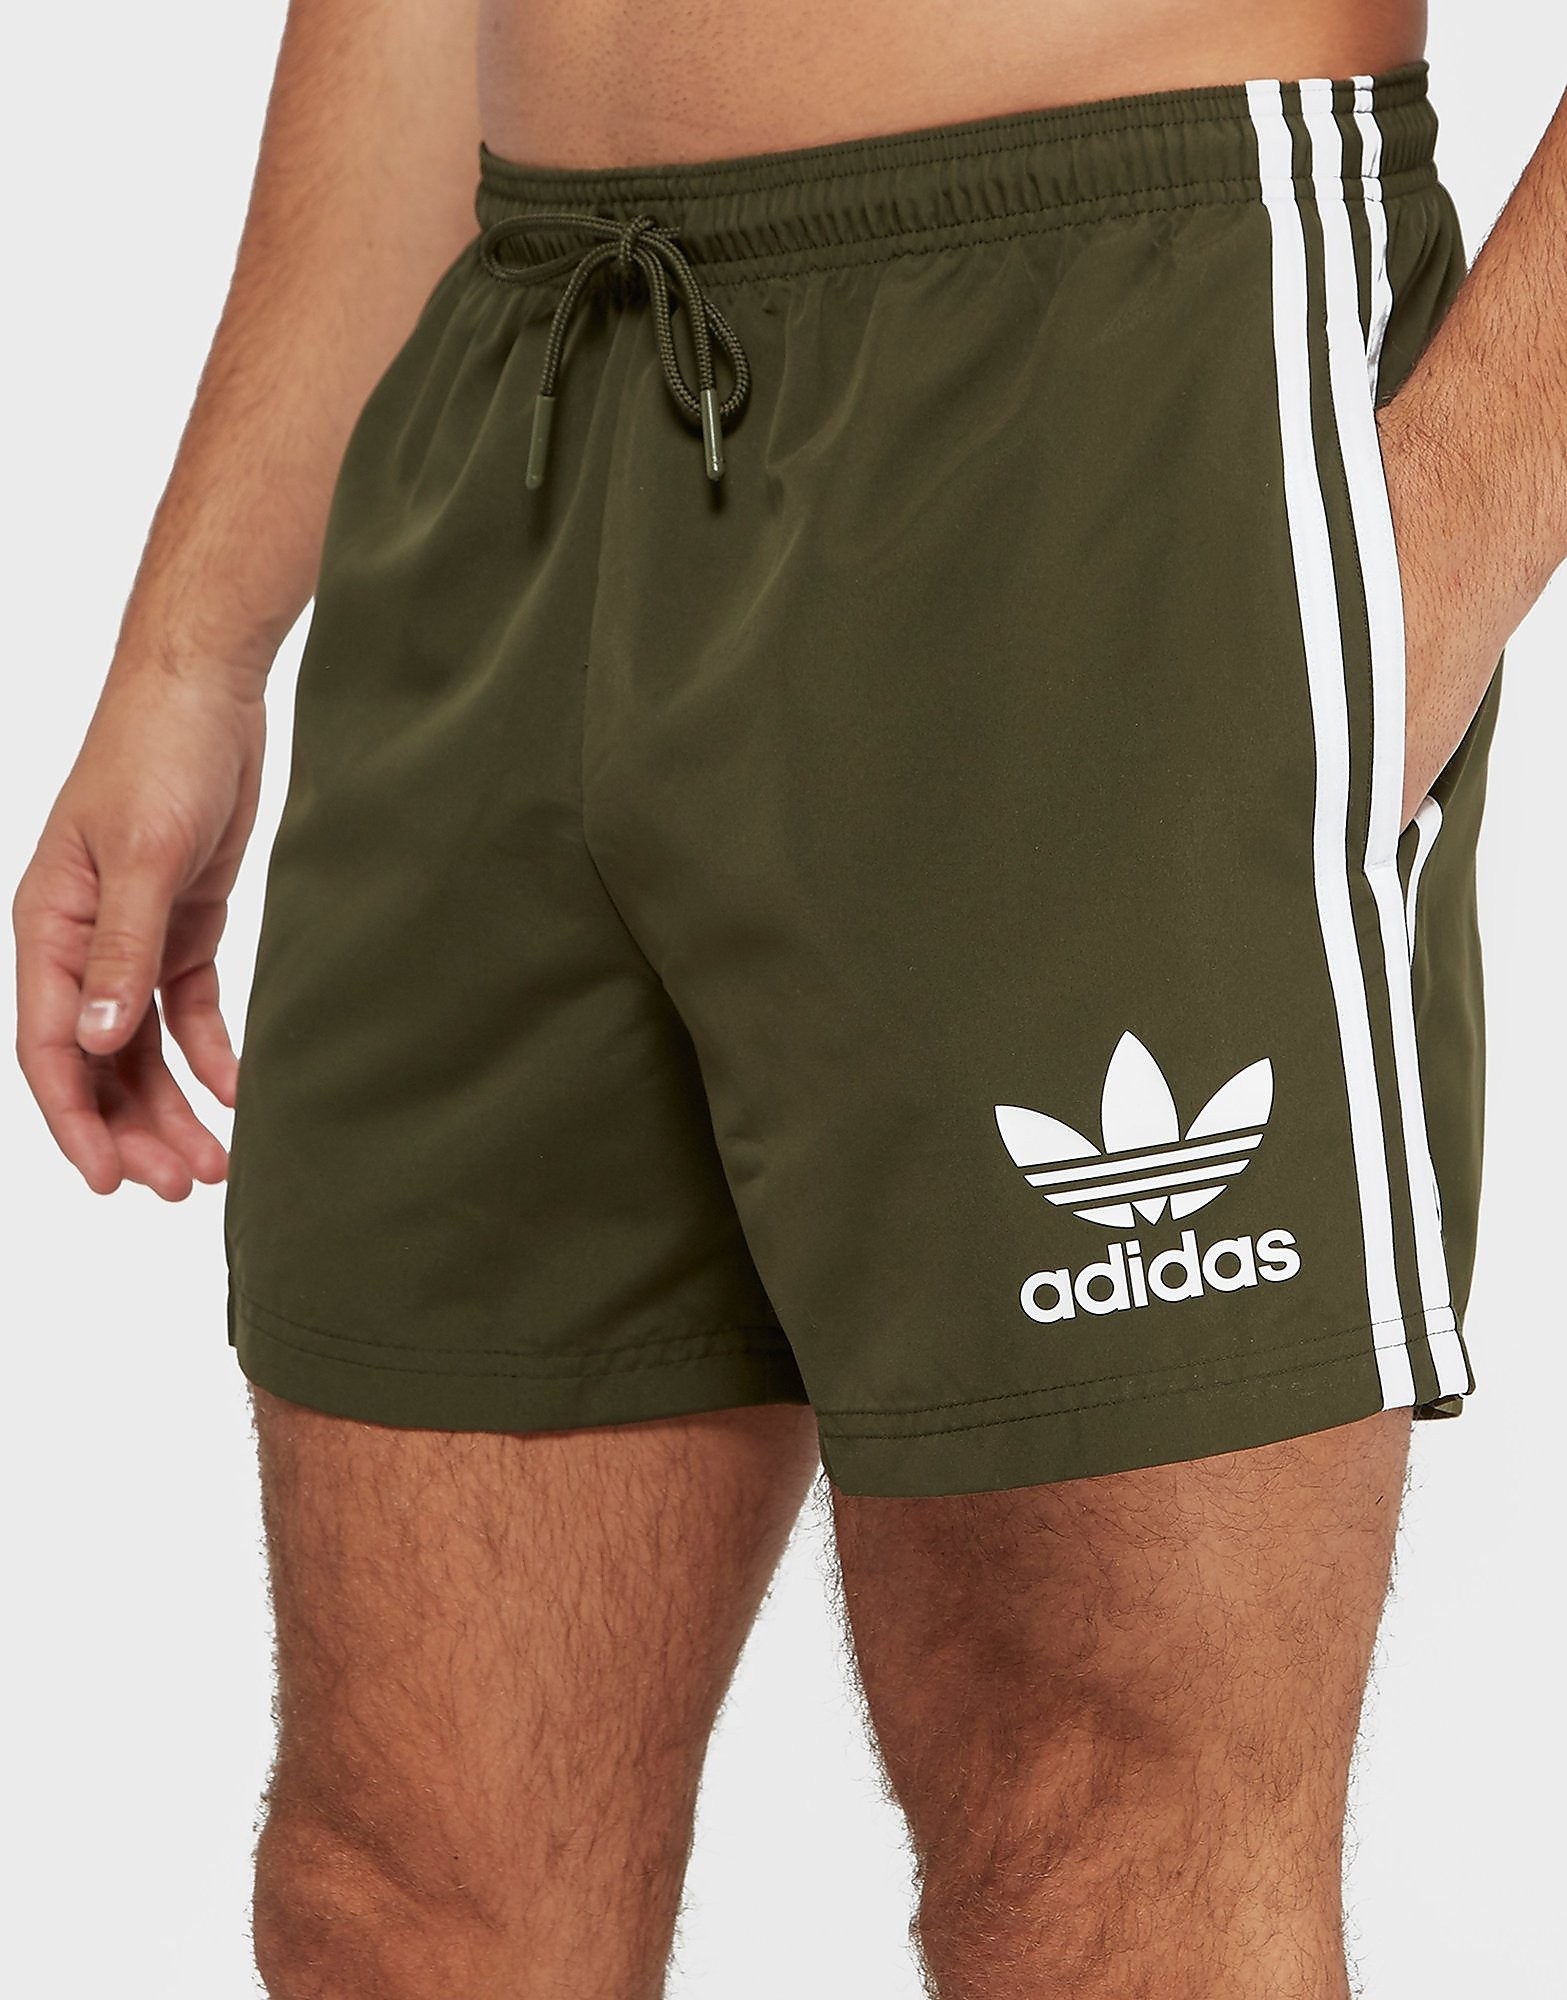 adidas Originals Cali Swim Shorts